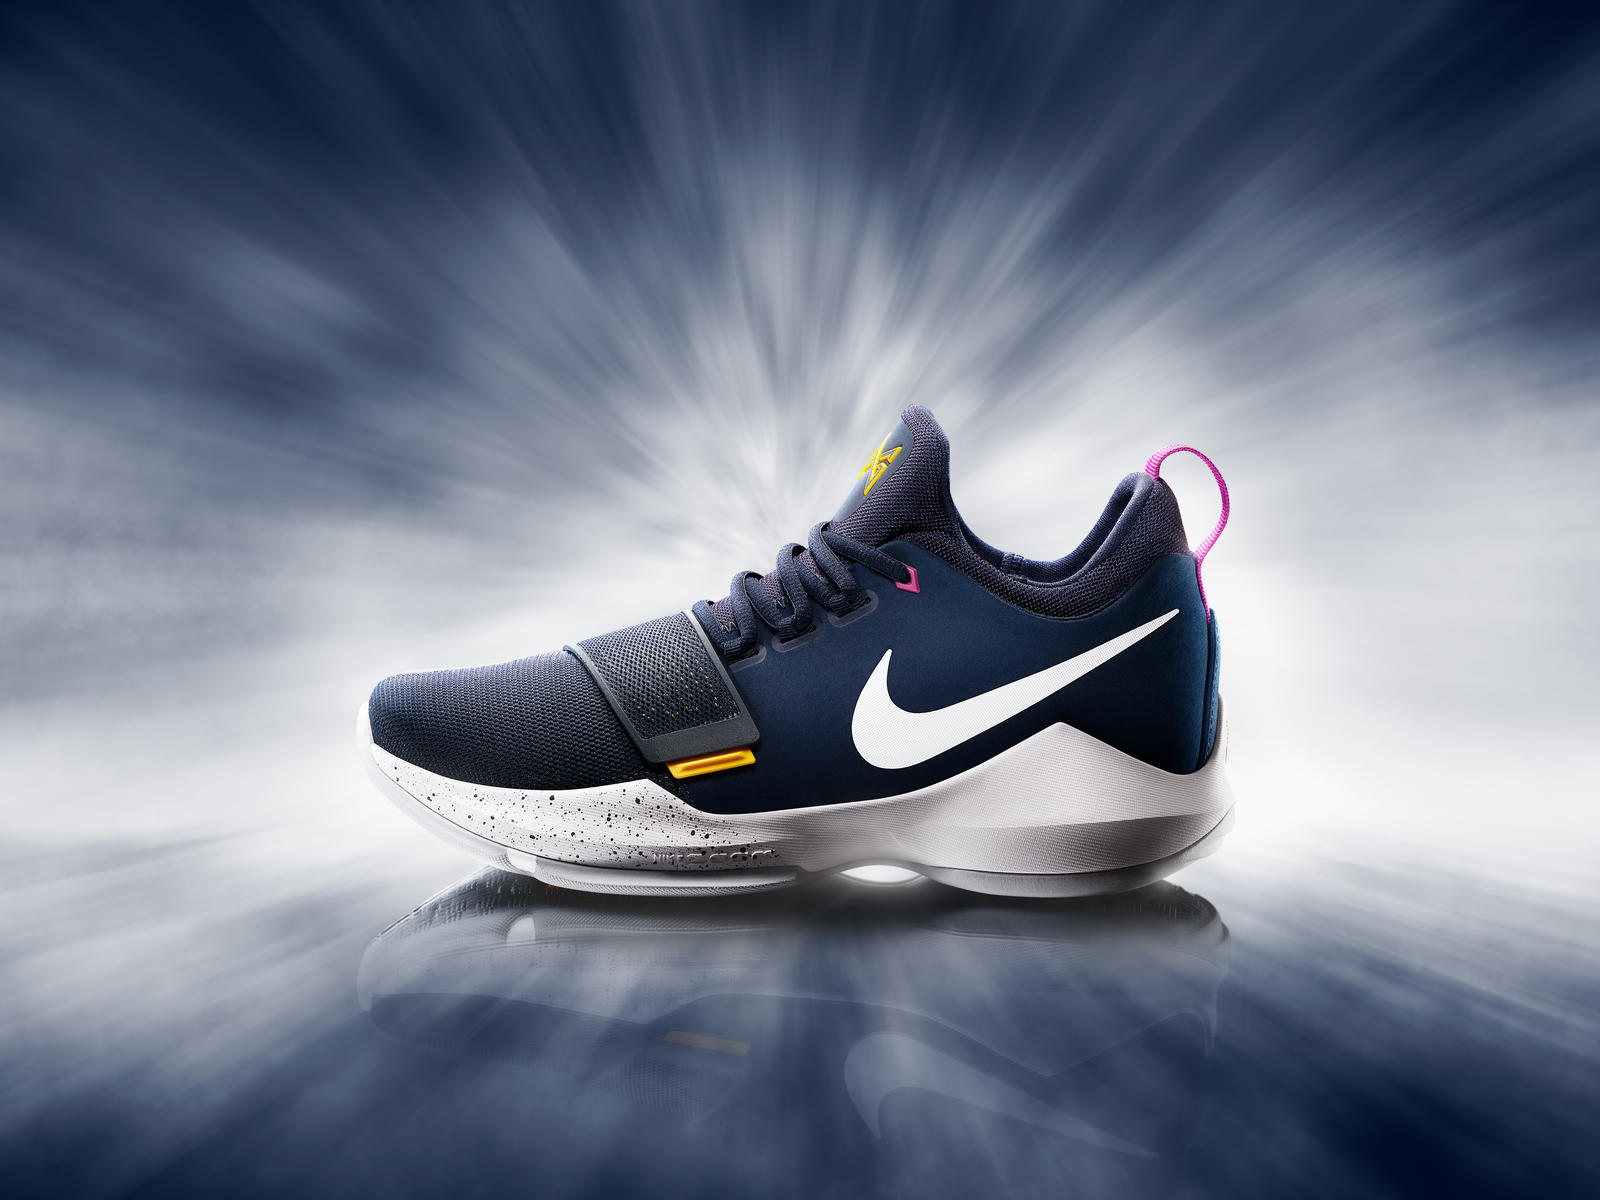 7a2b36d8ddd 10 Things To Know About the PG1 - Nike News